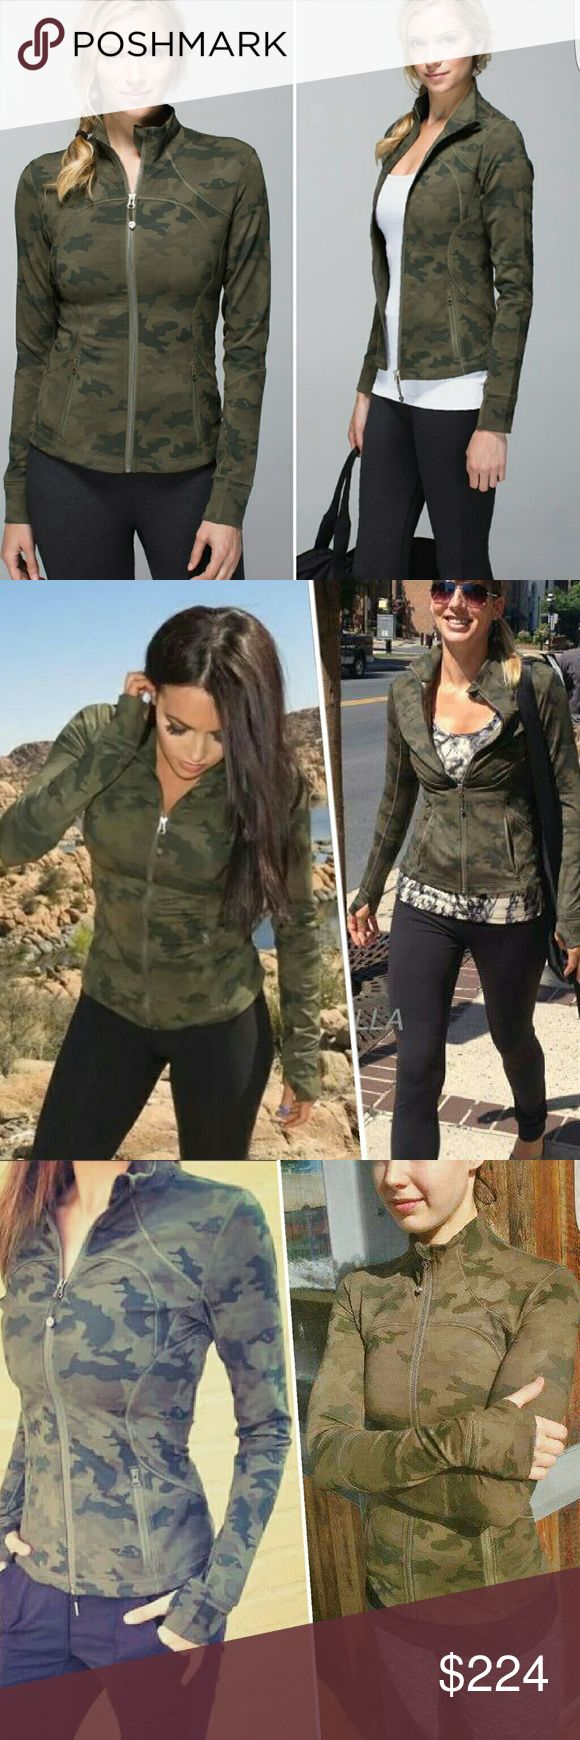 EUC Lululemon Army Green Camo Forme Jacket 2&4 XS Condition:Amazing.No pilling,stains,tears or damages.Very gently worn & well kept Color code:Fatg,milt,dkov,scfg Color:Fatigue,olive,sage,military,slate,wren,gator,tan, brown Pattern:Savasana cammo,camouflage Closure:Full zip up Fabric:Luon Style:Fitted,like define  Size&fit:True to size 4/fits like a glove,runs snug (for formes) enough to look good on 2 / inbetween 2-4 also.  Offers/price:Less on ???? (subtract f e e s) FIRM HERE…